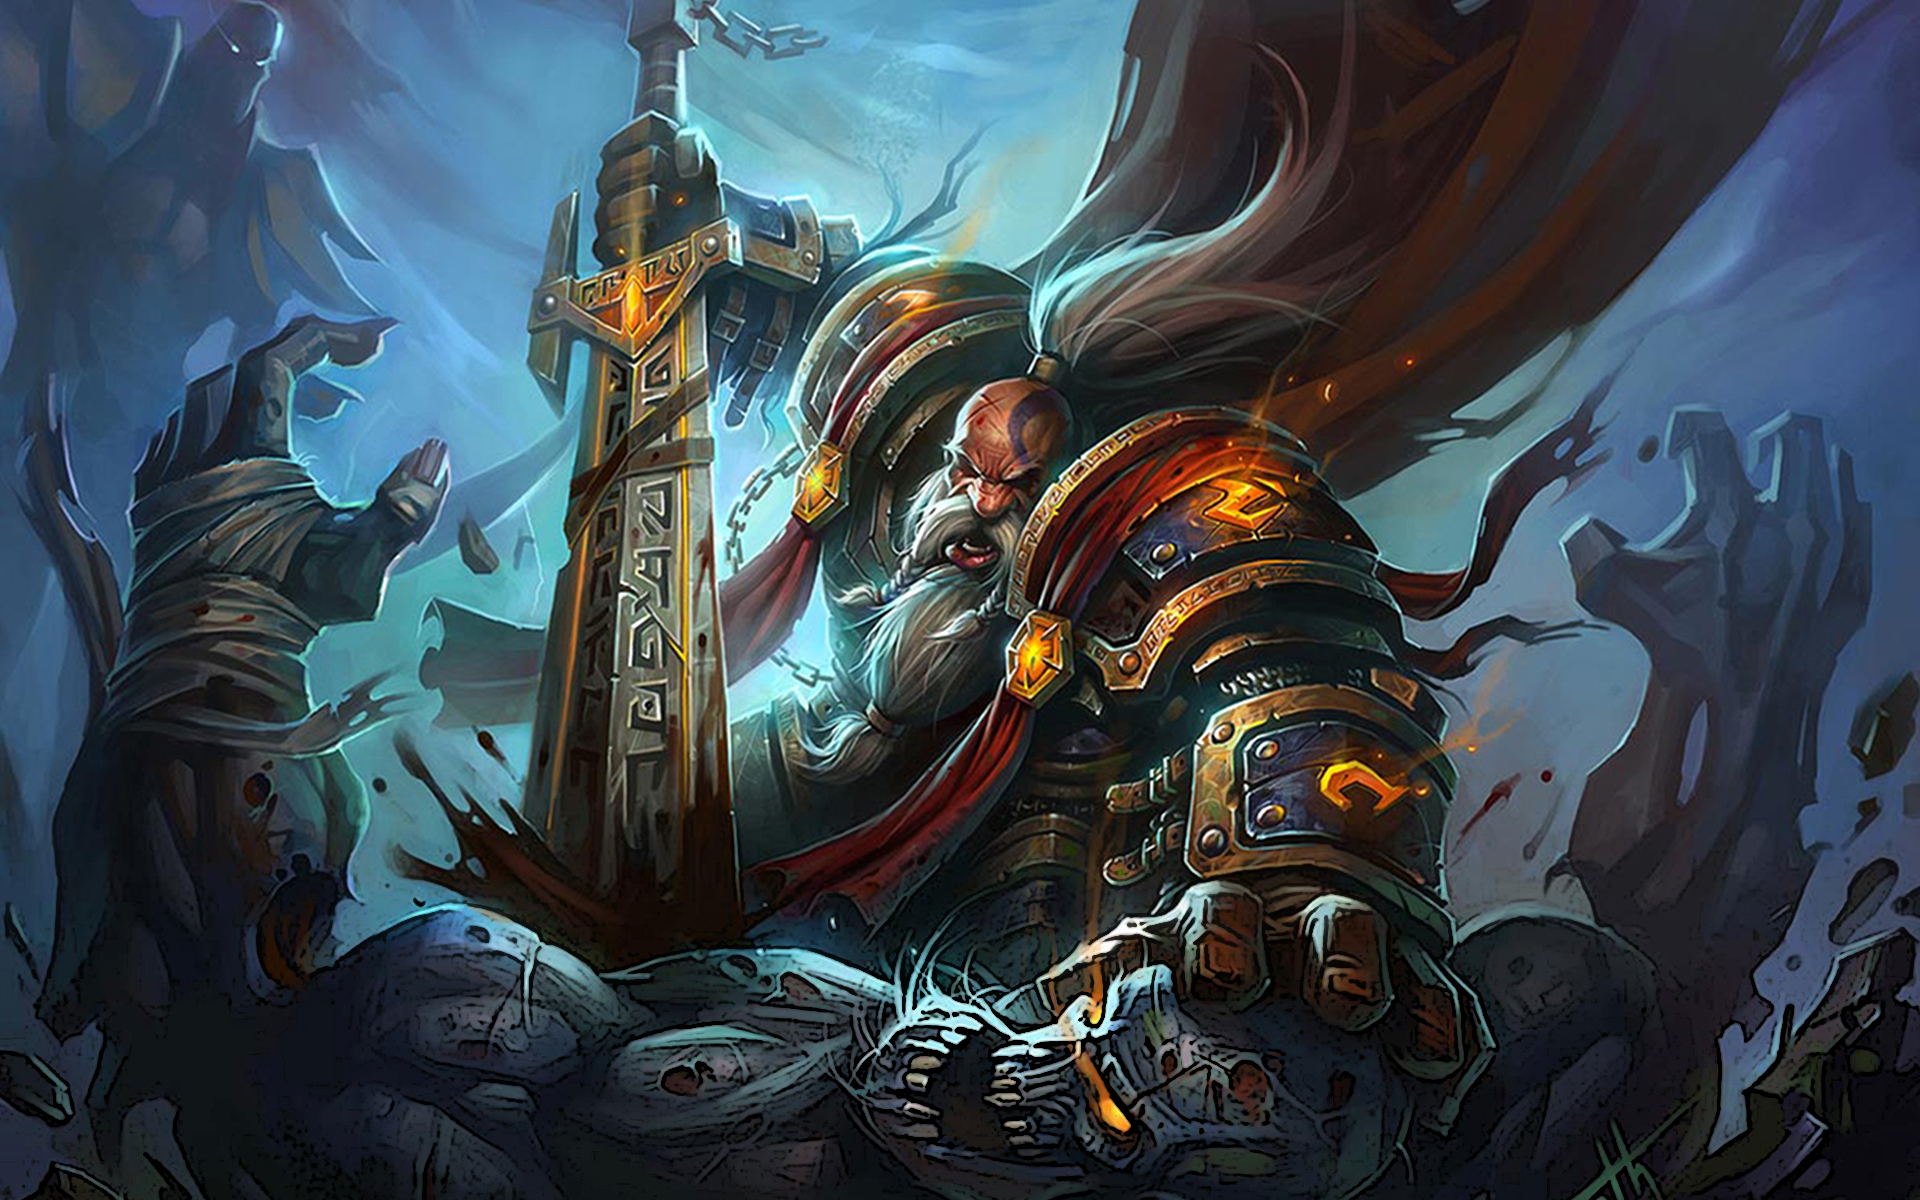 Free Download World Of Warcraft Backgrounds 1920x1200 For Your